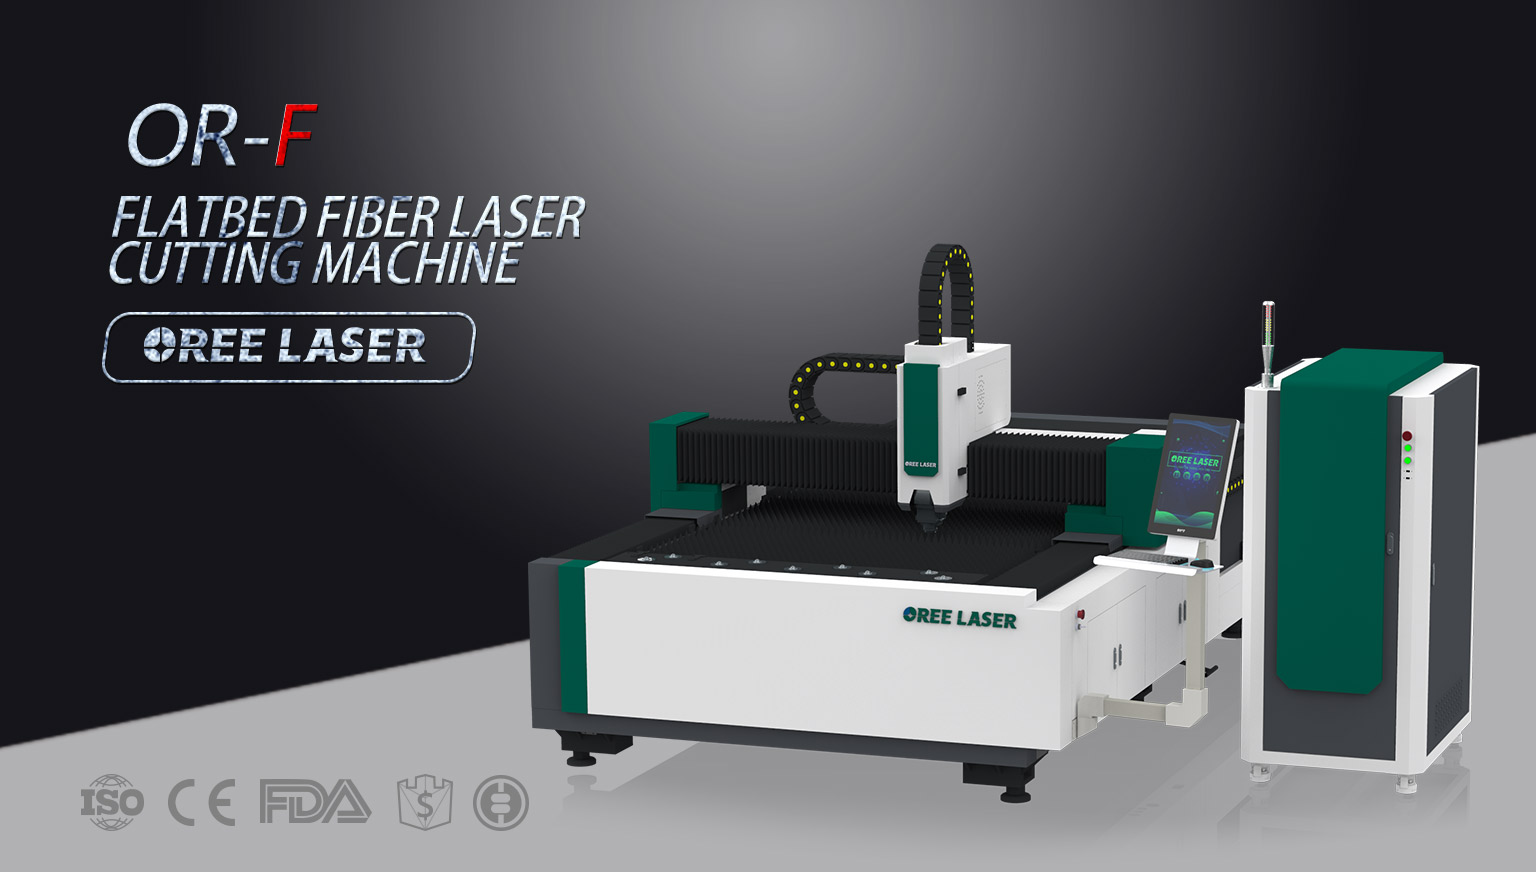 Flatbed Fiber Laser Cutting Machine OR-F